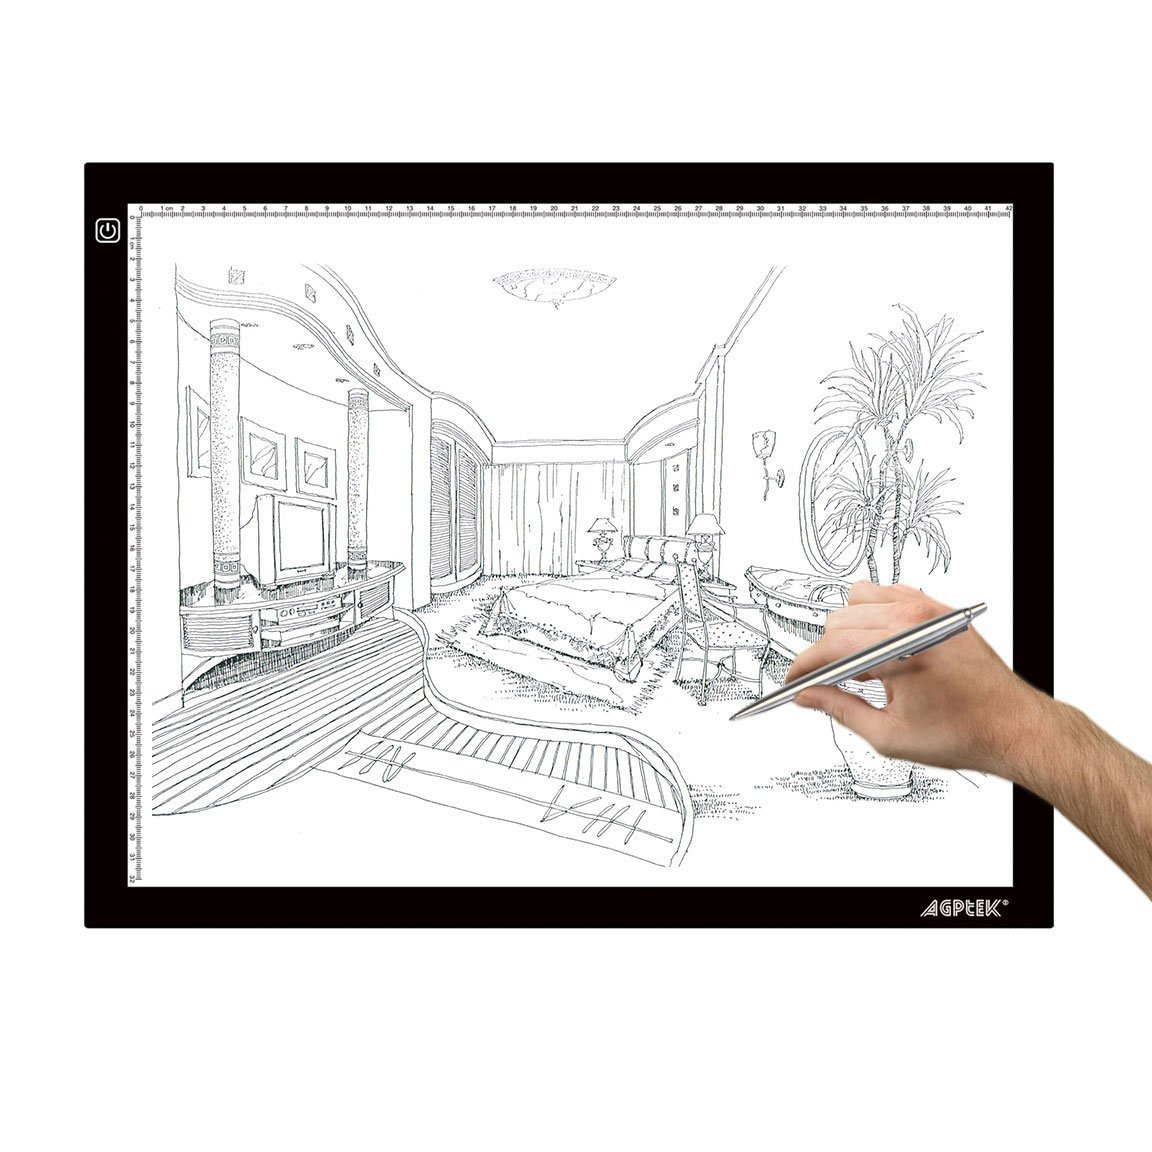 A3 Light Box, AGPtek LED Artcraft Tracing Light Pad Ultra-thin USB Power Cable Dimmable Brightness Tatoo Pad Aniamtion, Sketching, Designing, Stencilling X-ray Viewing W/ USB Adapter (PSE Approval ) by AGPTEK